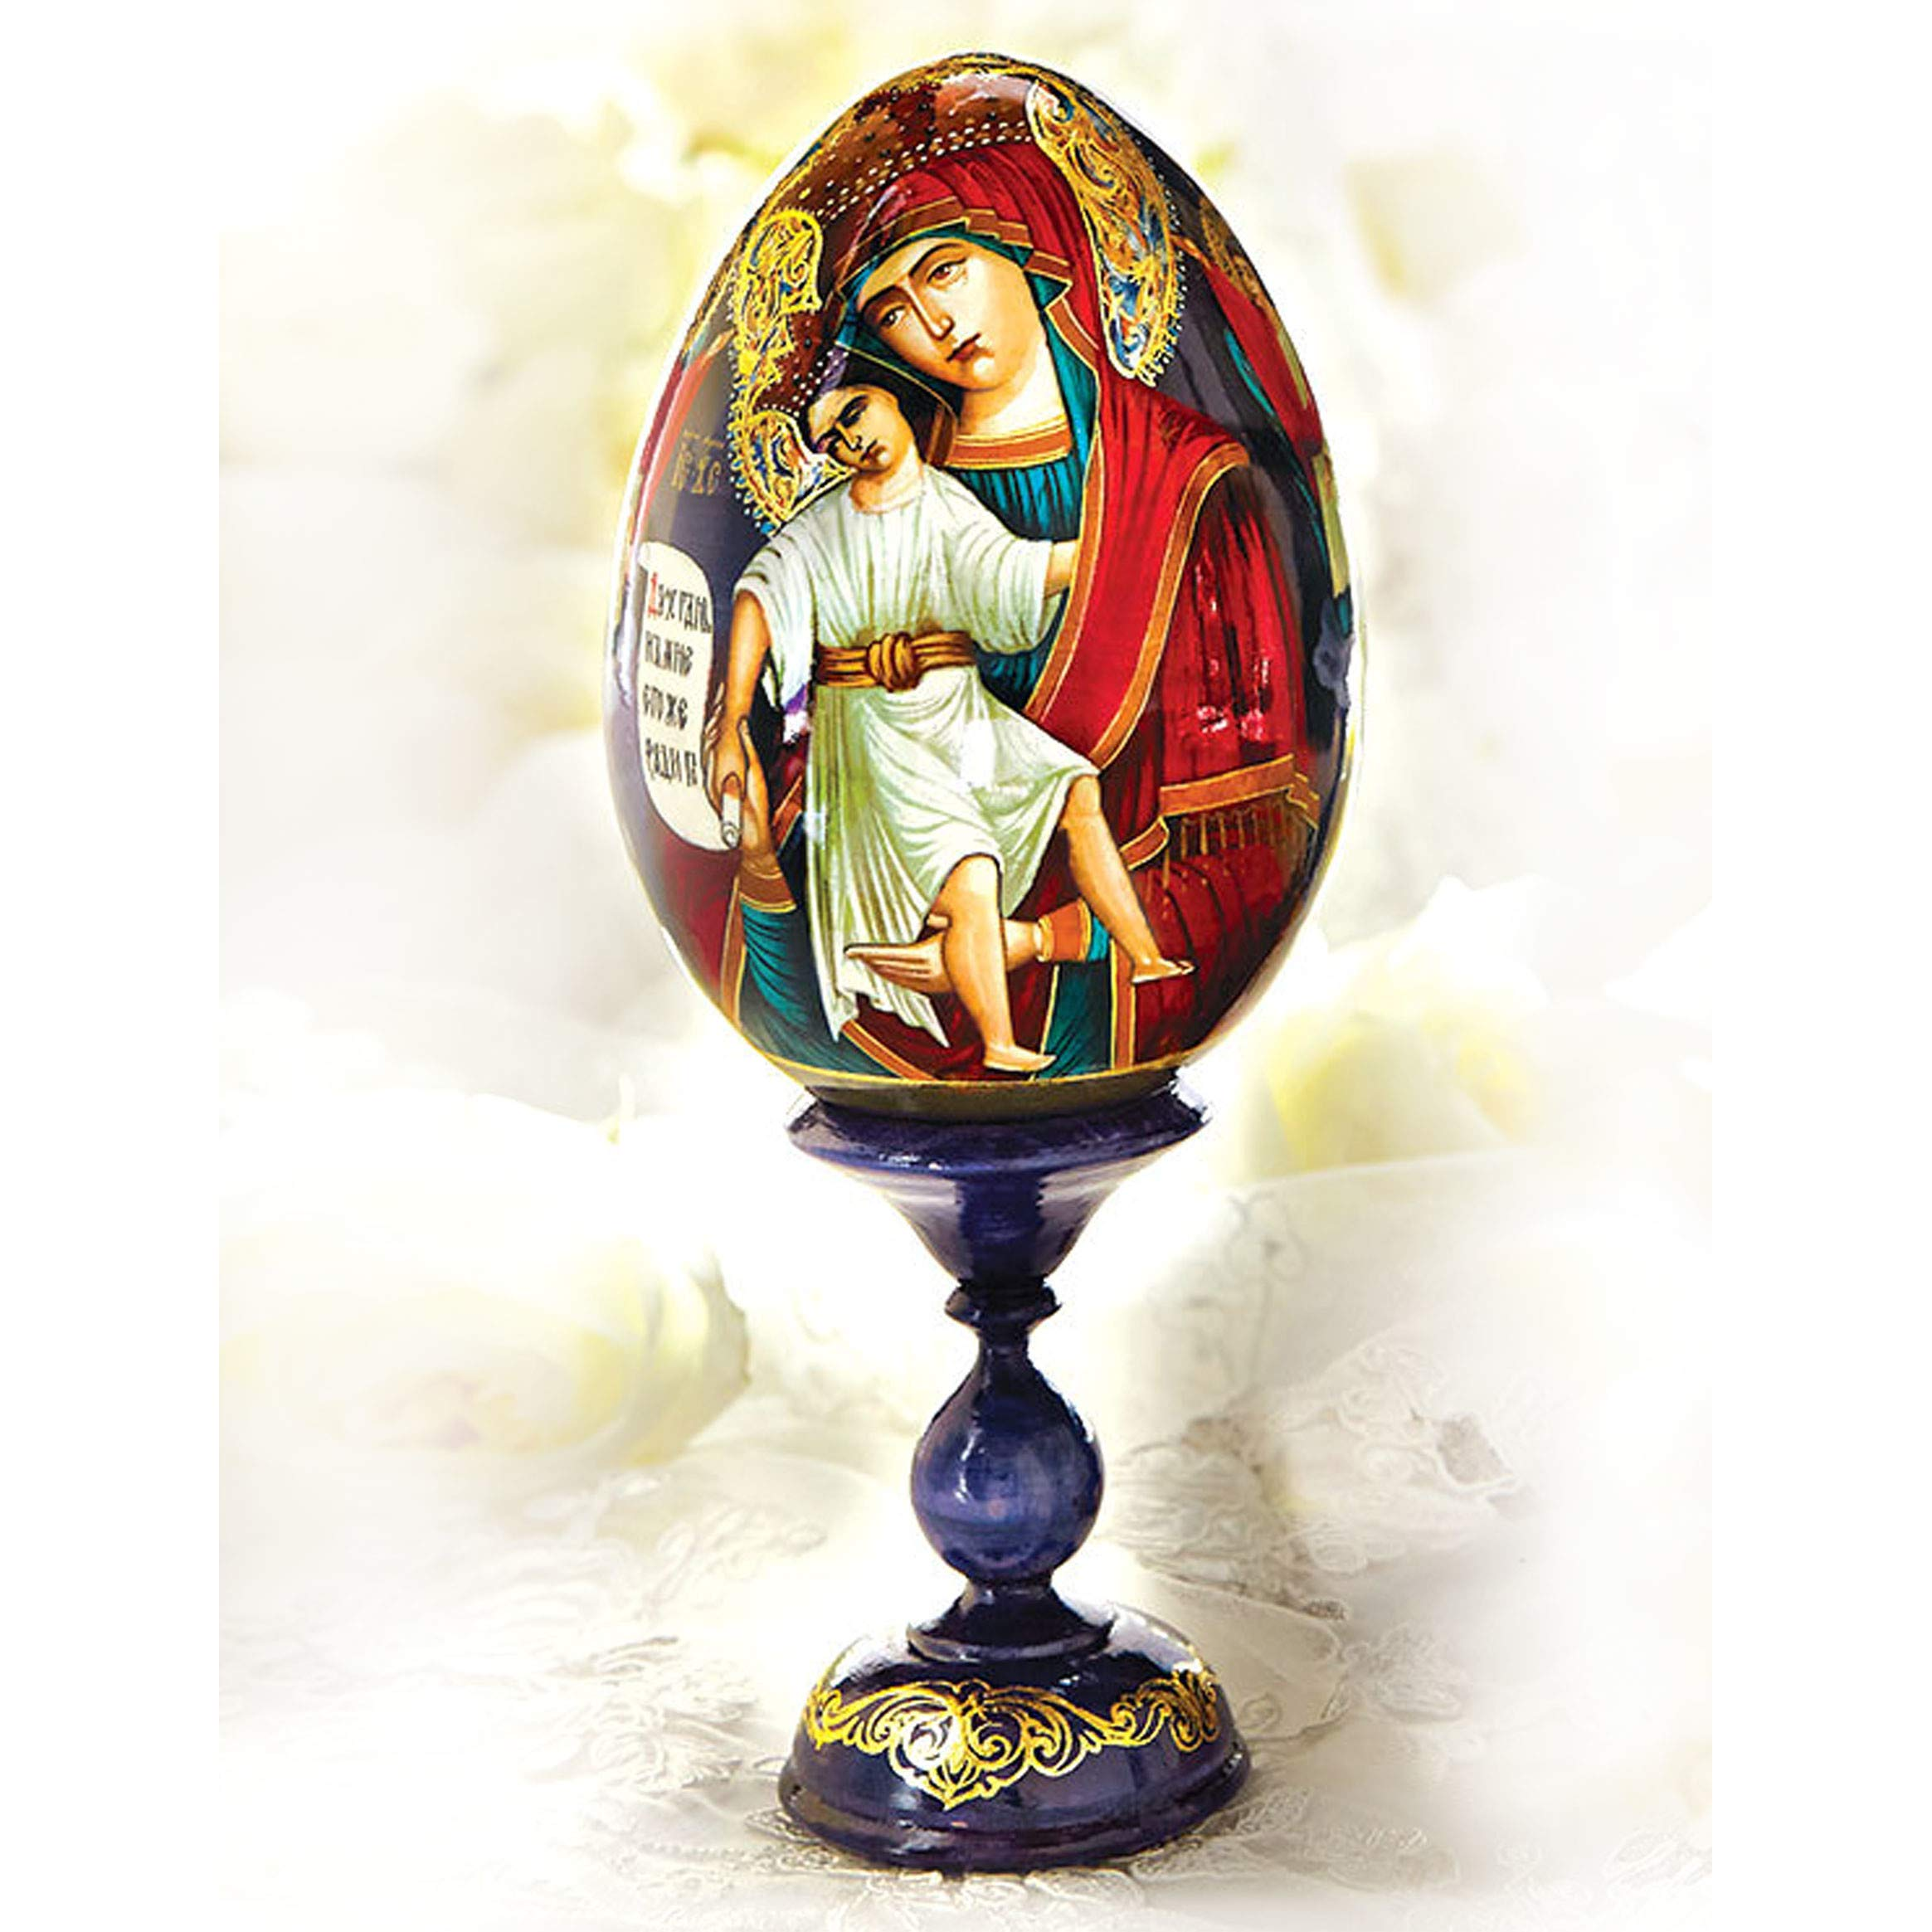 World Faith Egg Hand Painted Beautiful Russian Wooden Icon Egg with Egg Stand Holder 7-1/2 Inch Tall